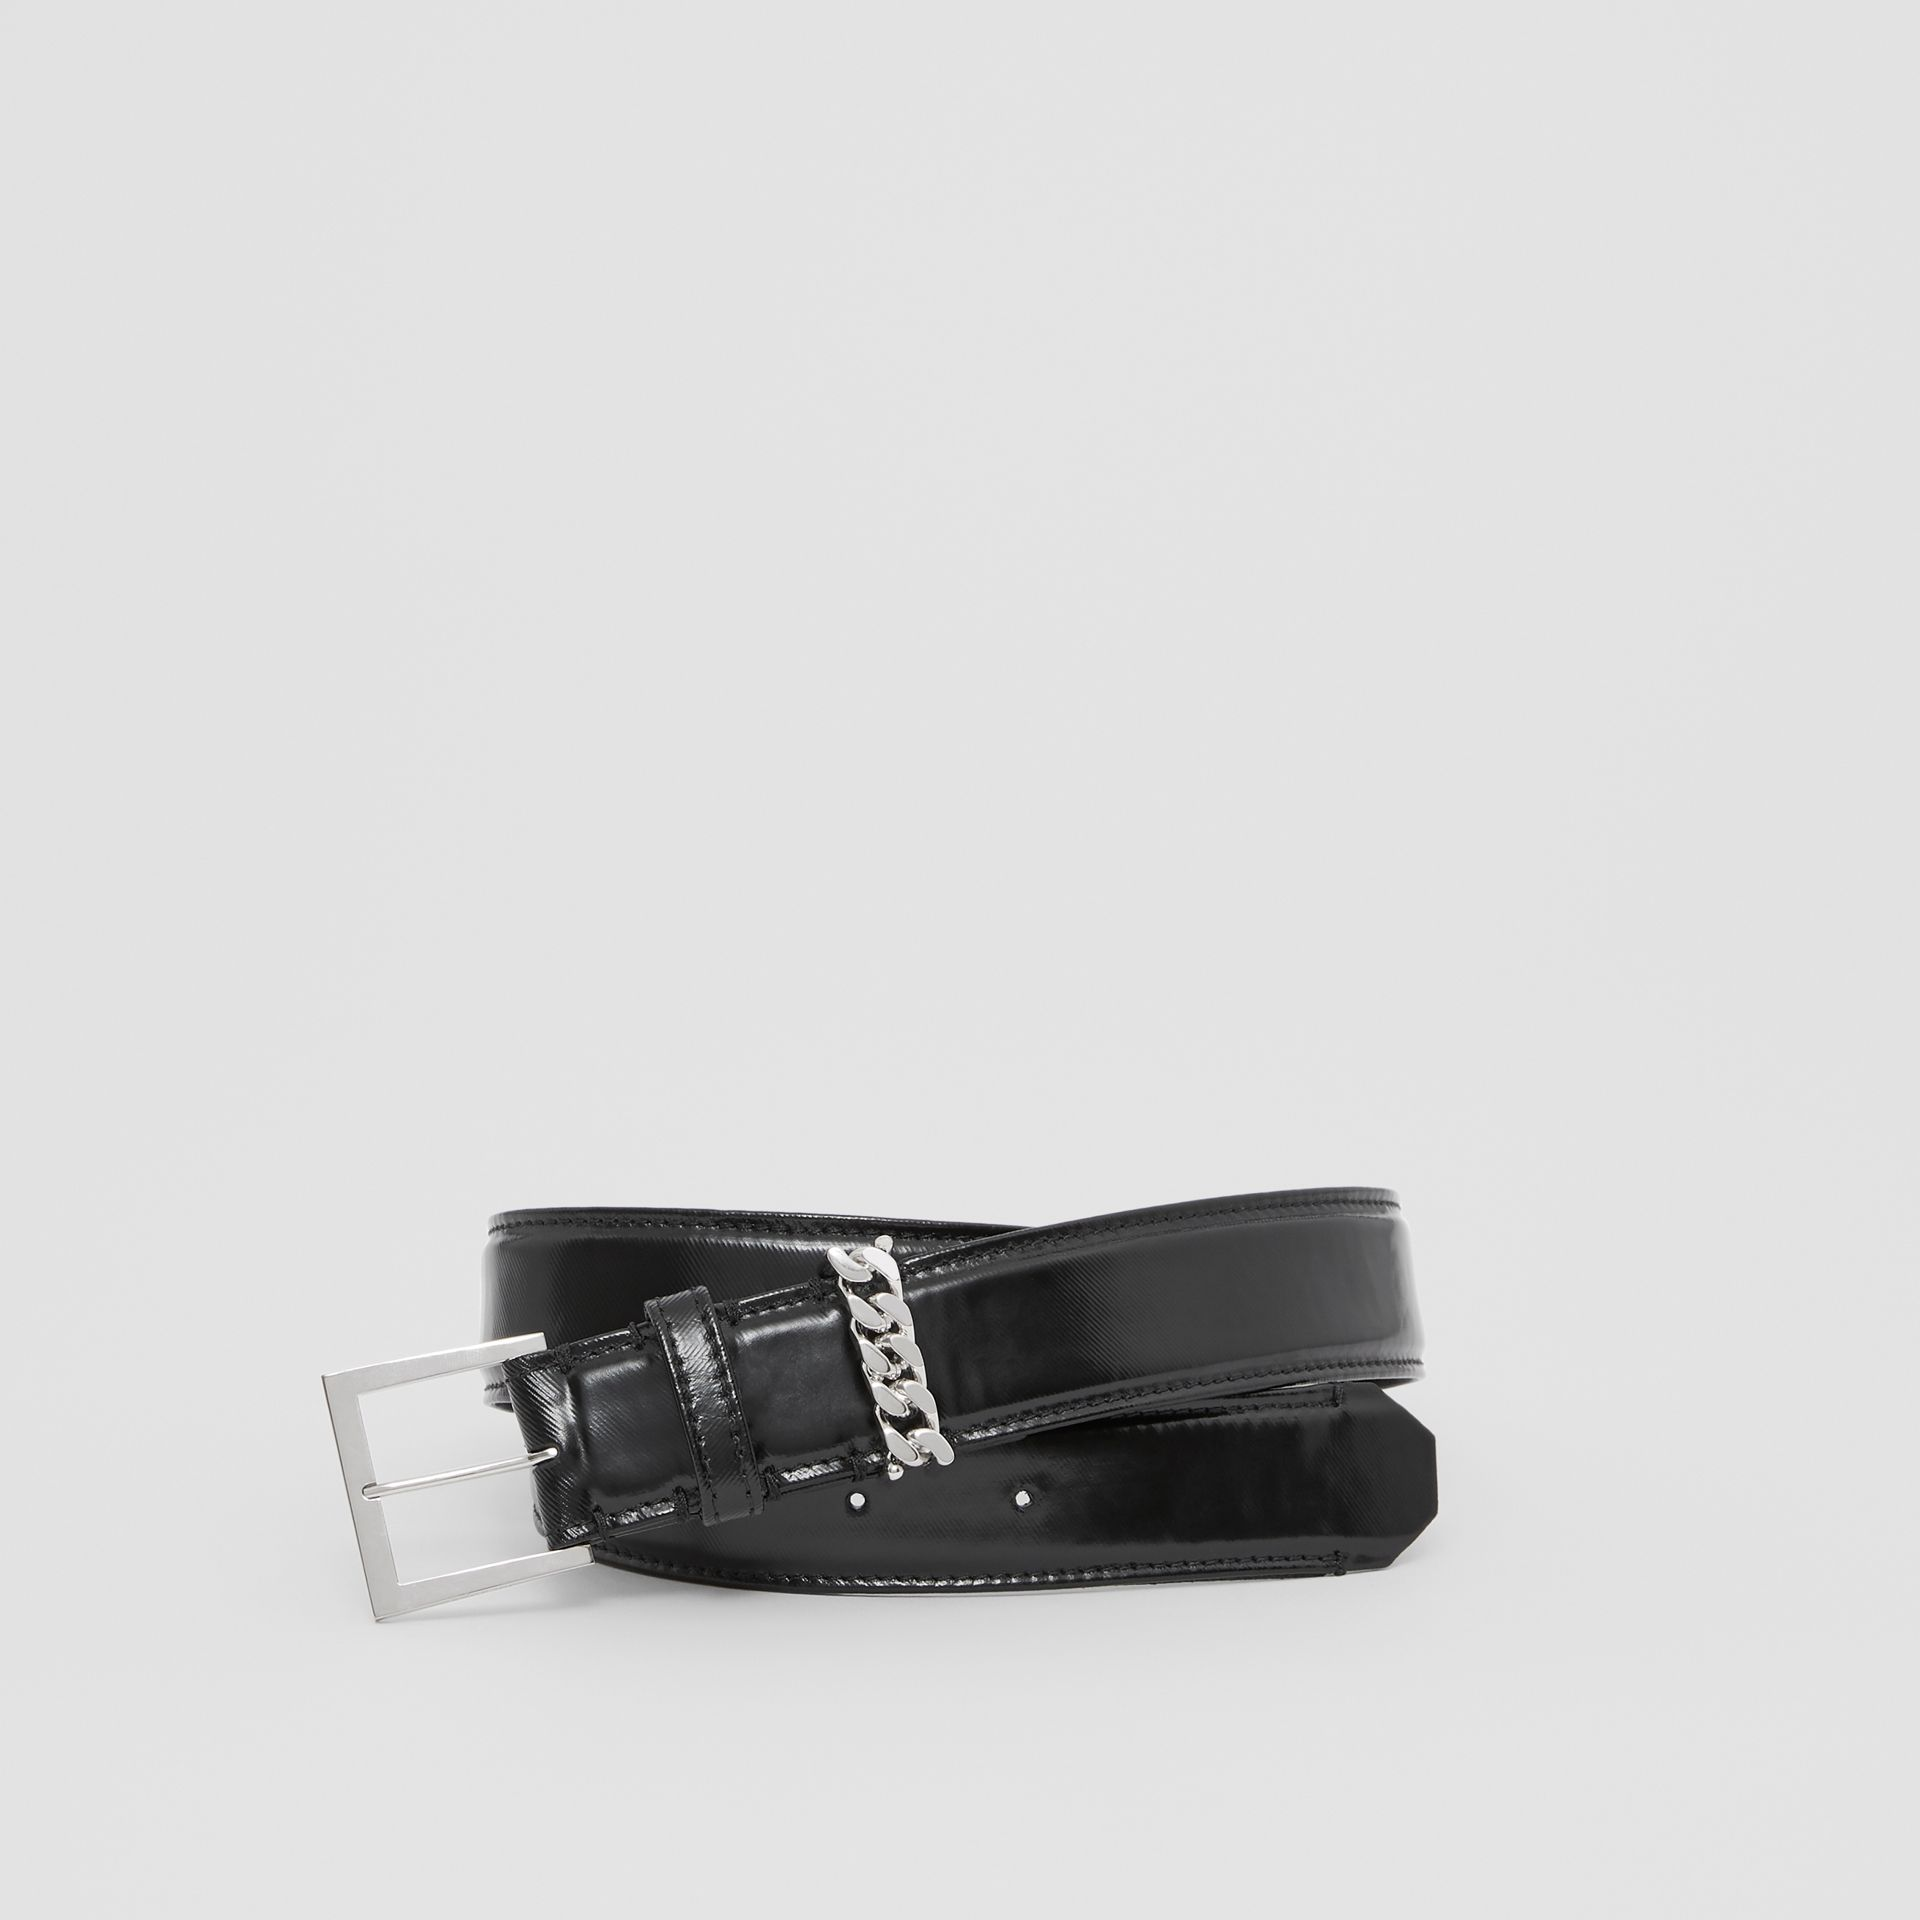 Chain Detail Horseferry Print Coated Canvas Belt in Black/palladium - Women | Burberry United States - gallery image 0